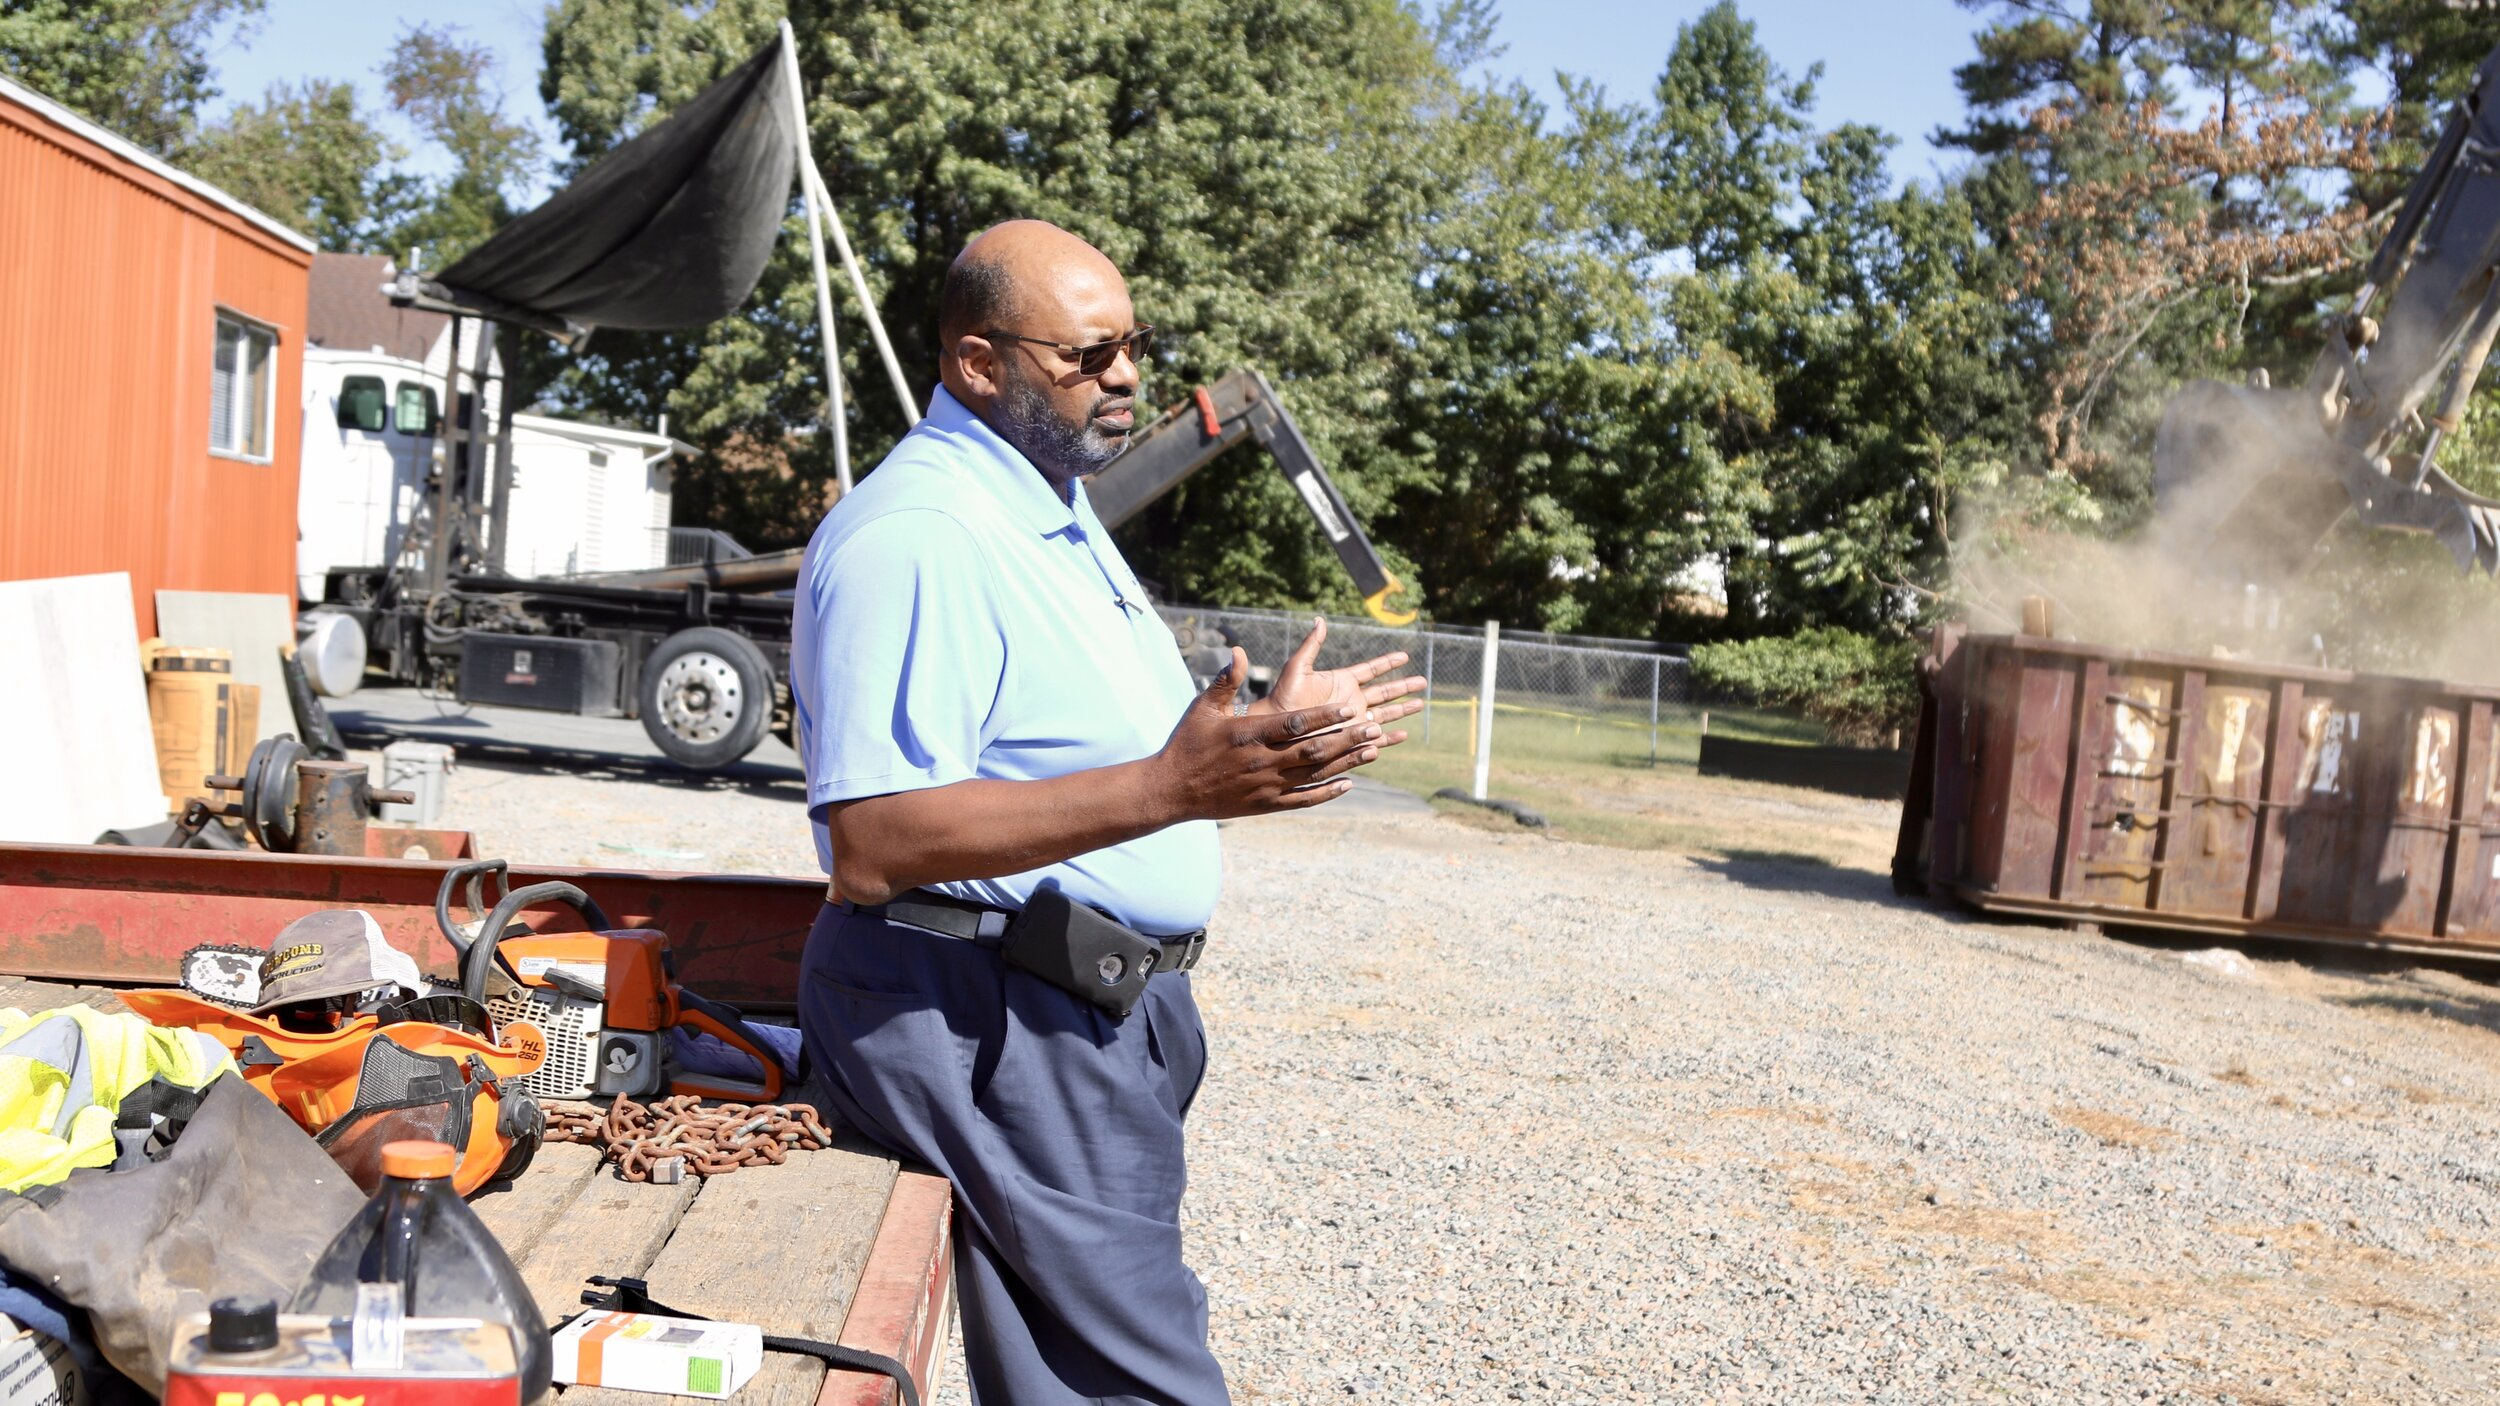 Navy Hill MBE contractor Ken Jones talks Navy Hill and his plans for a nonprofit workforce training program at his company headquarters off Turner Road in North Chesterfield.